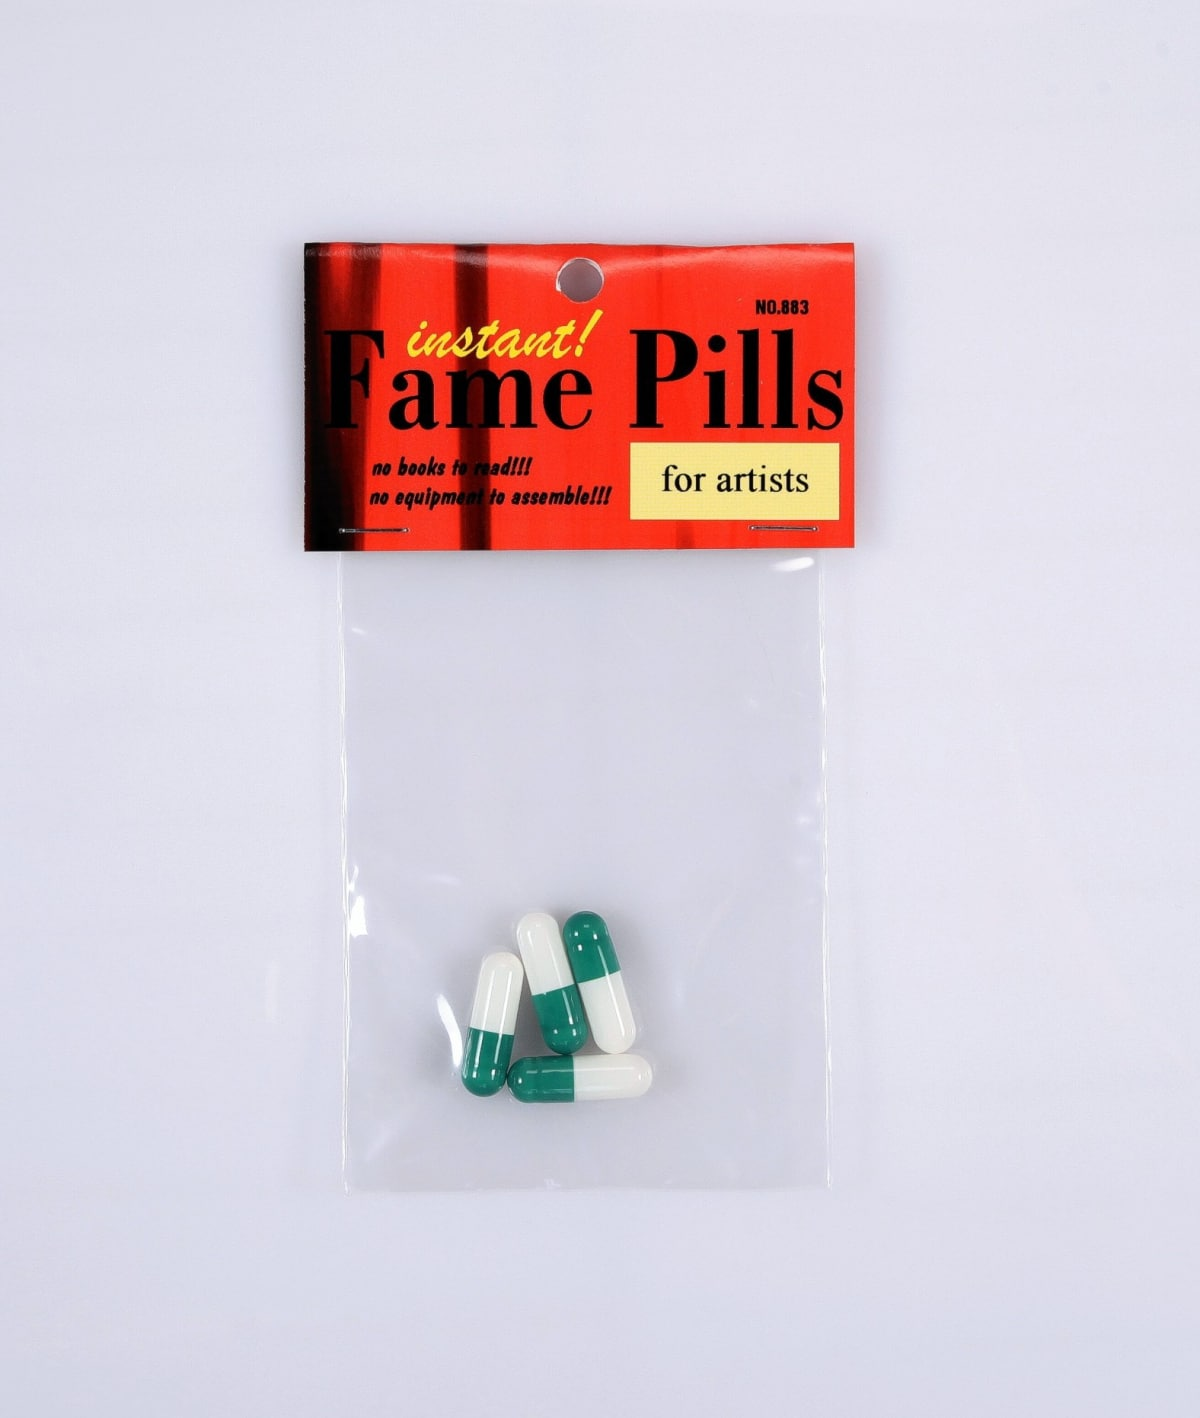 Instant fame pills for artists